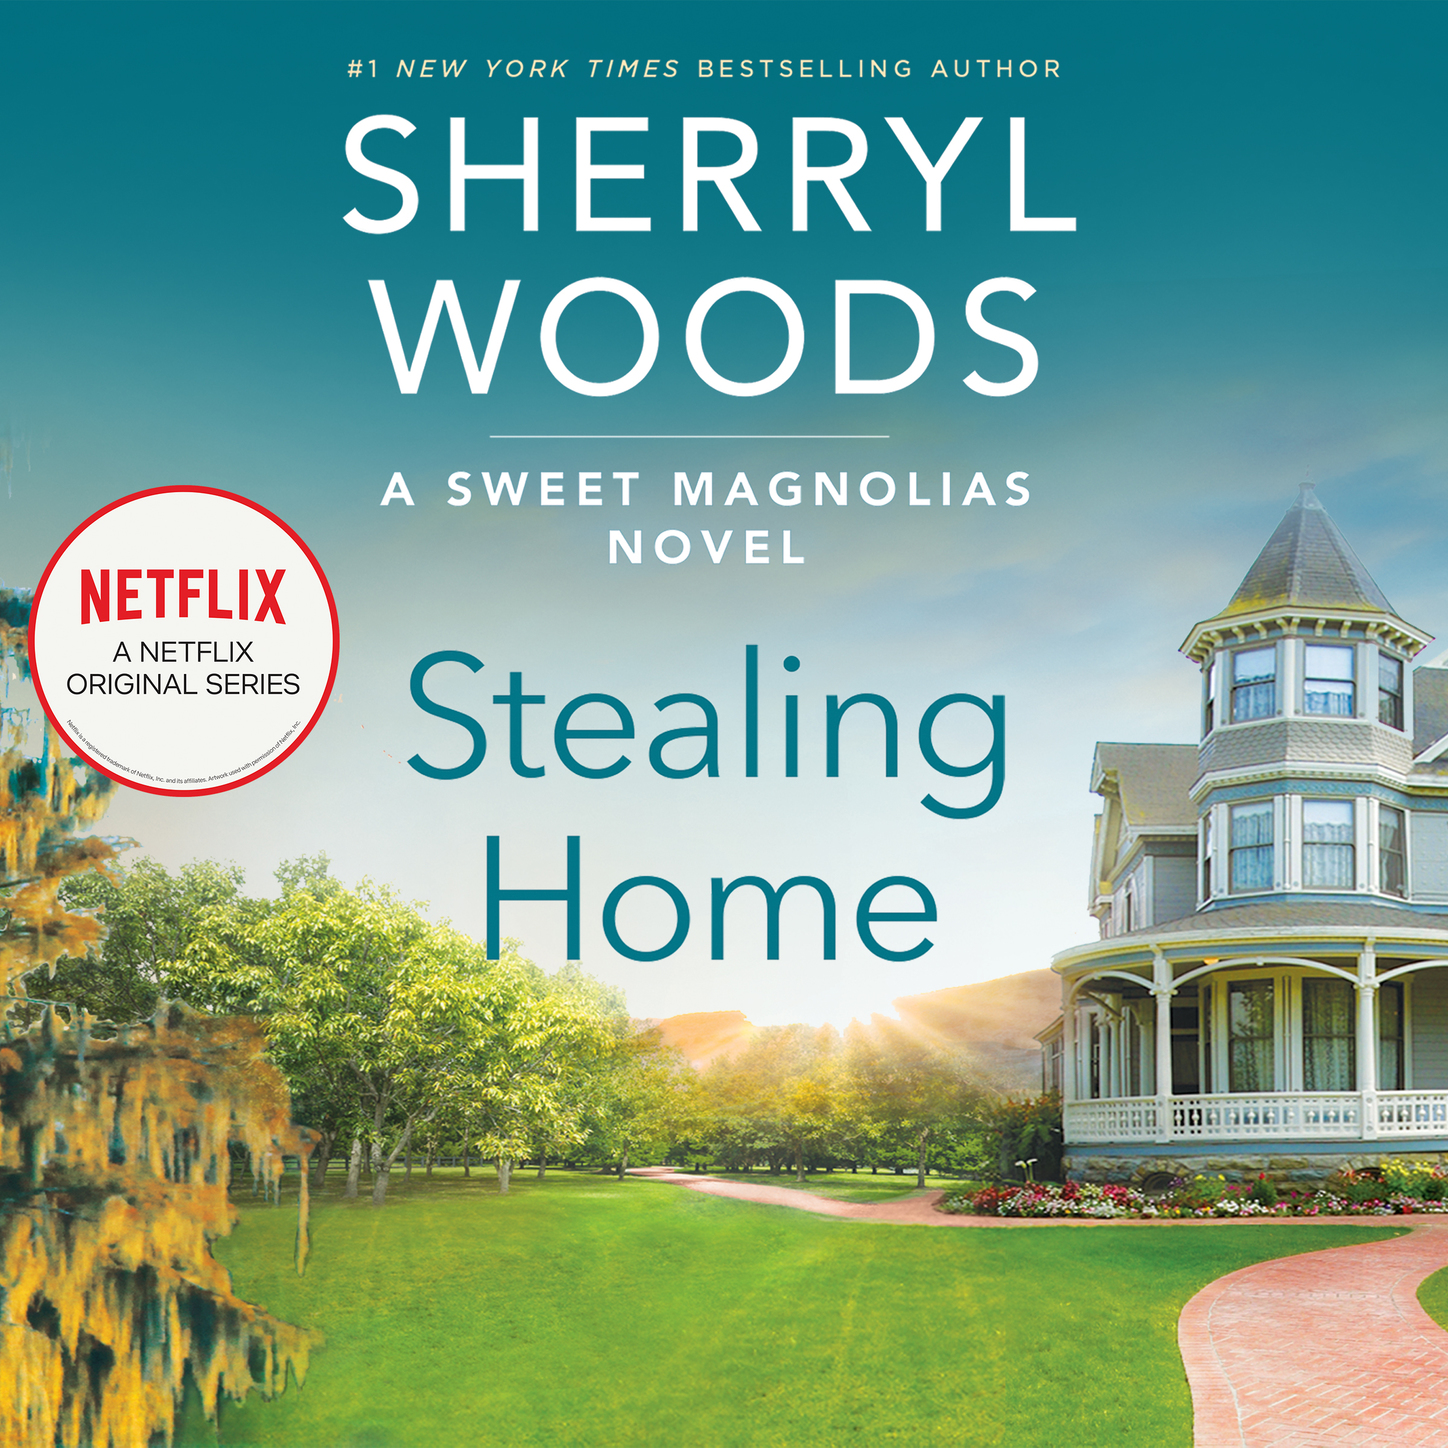 Sherryl Woods Stealing Home - Sweet Magnolias, Book 1 (Unabridged) недорого